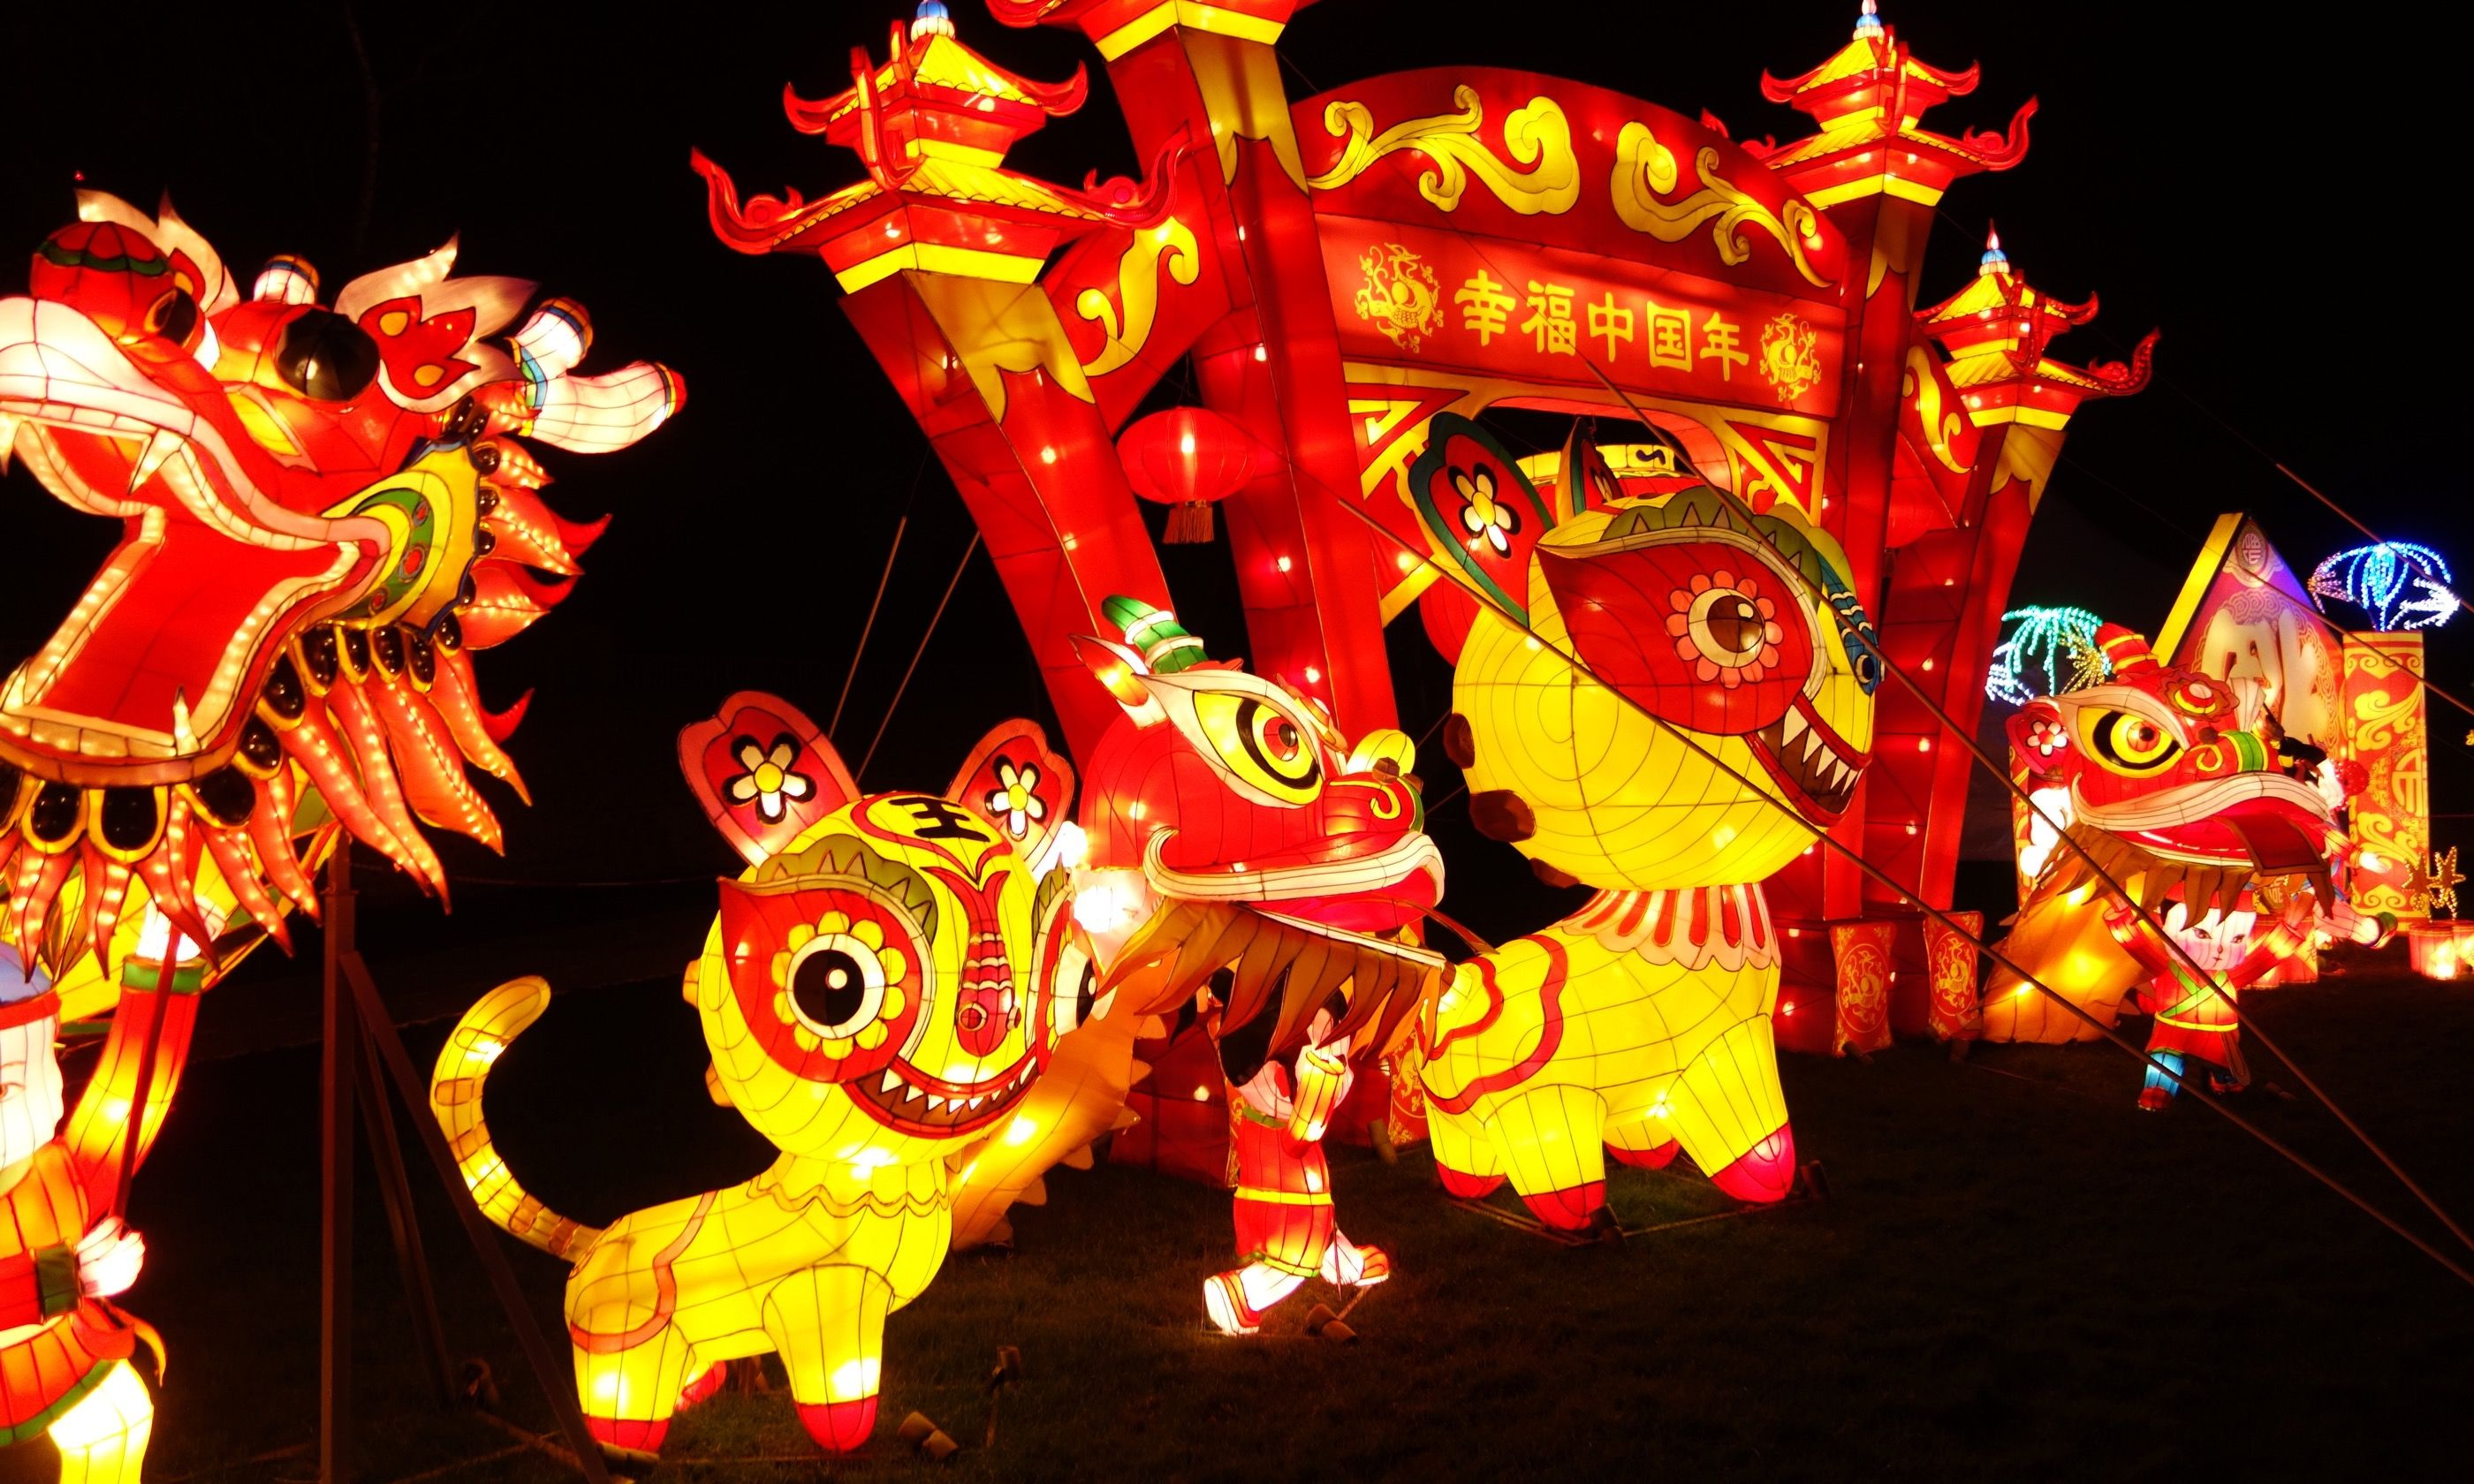 new year display peter moore - How To Celebrate Chinese New Year